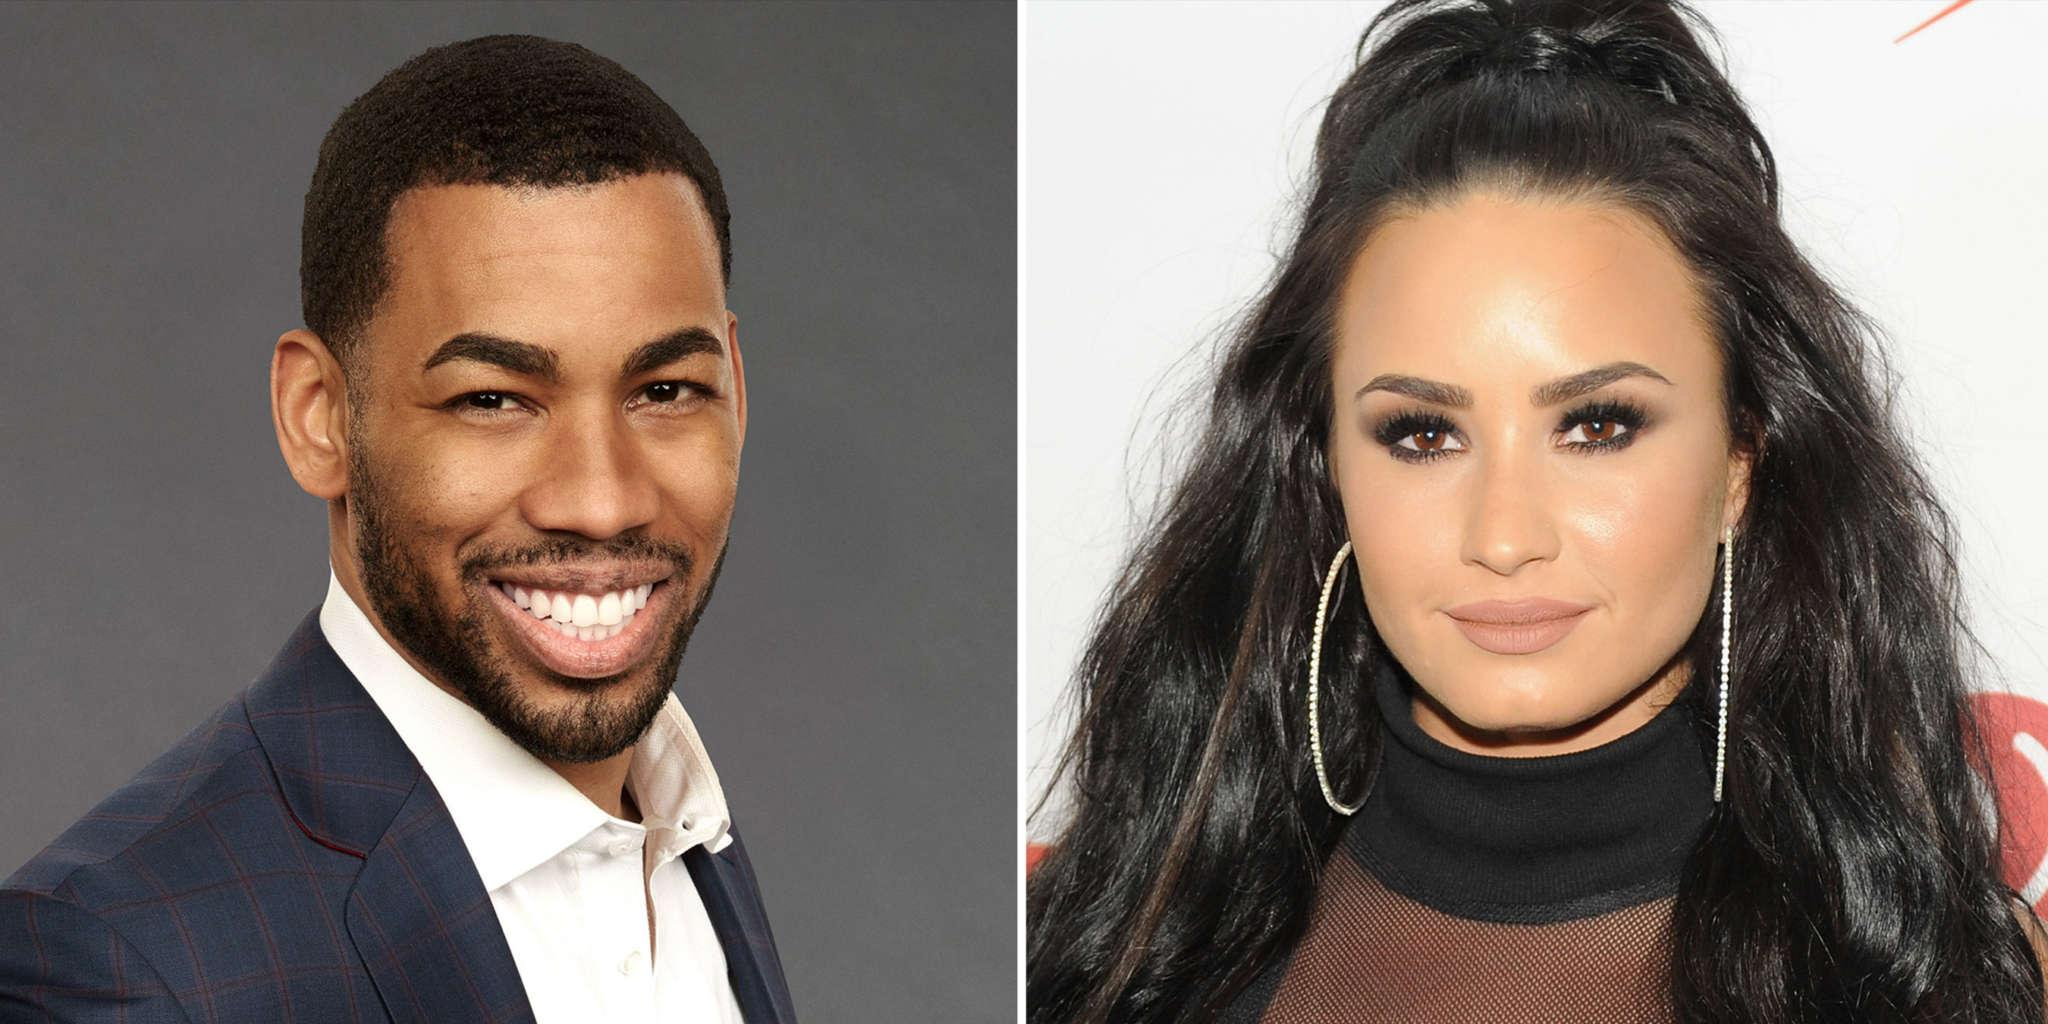 Demi Lovato's Crush 'Bachelorette' Star Mike Johnson Reacts To Her Unedited Swimsuit Picture And Flirts!